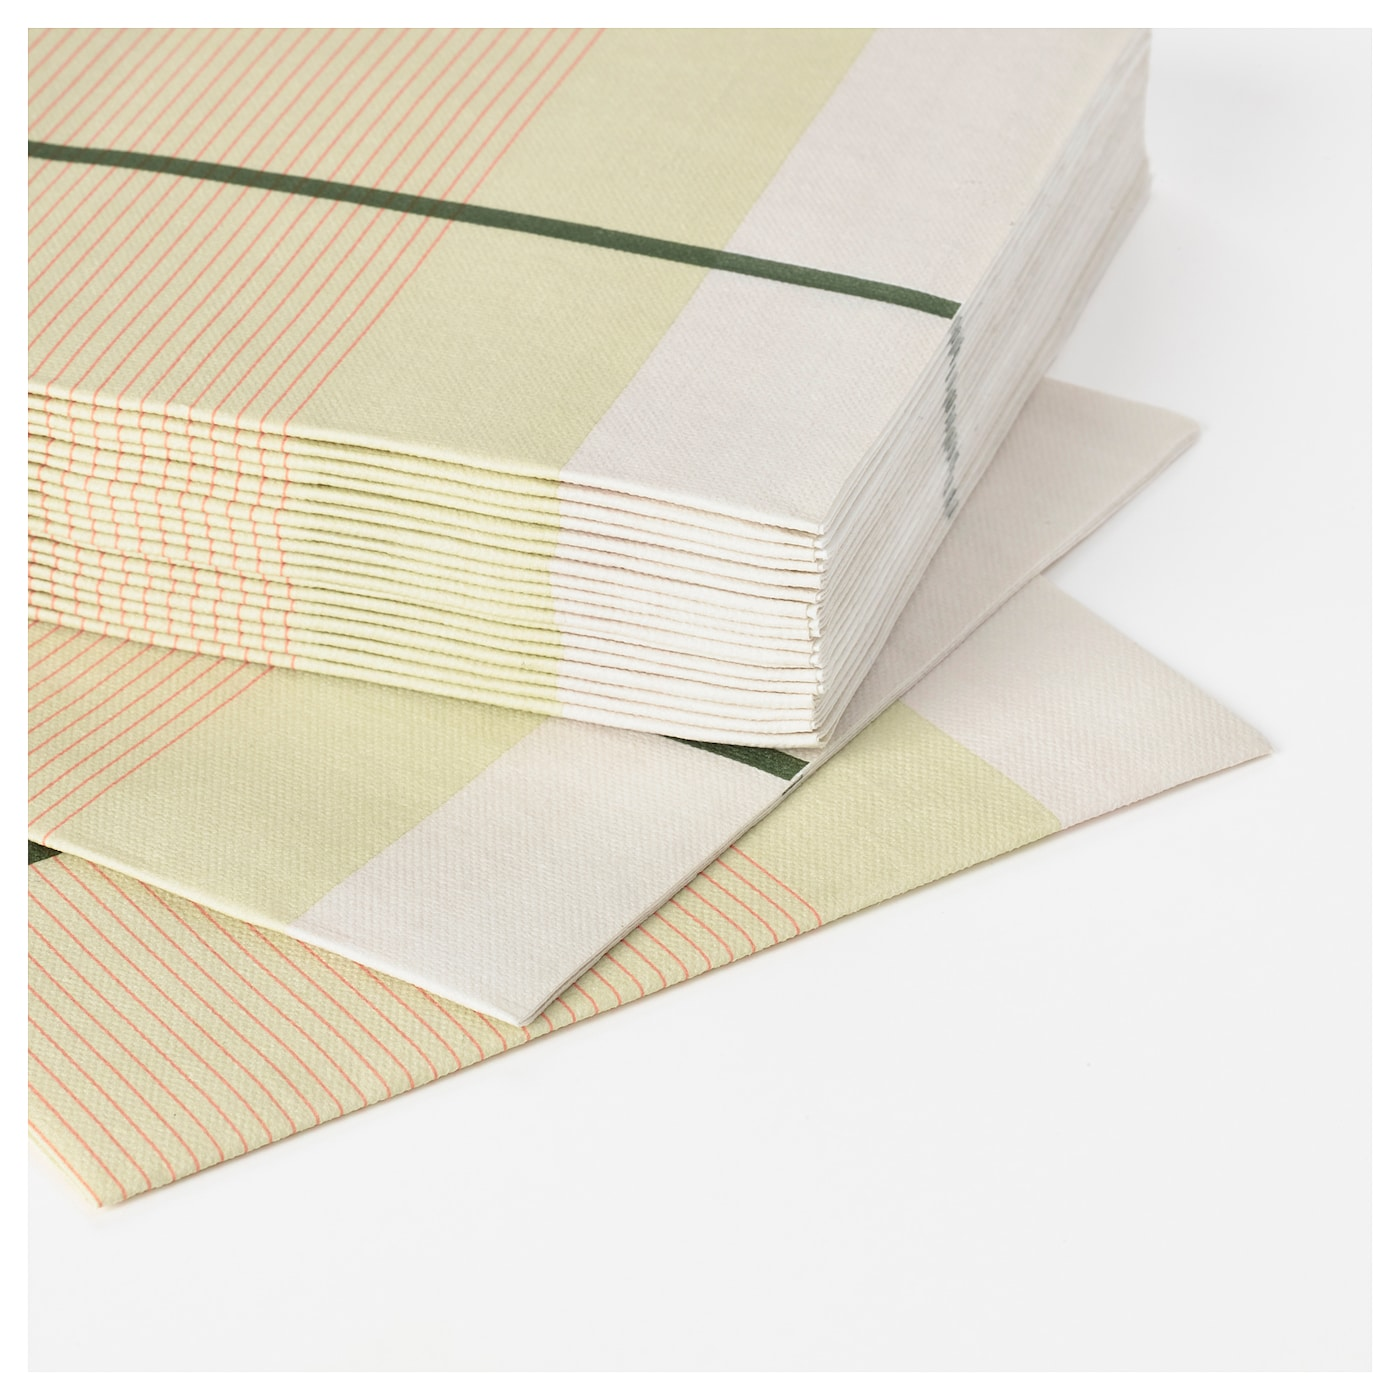 IKEA LYSKRAFT paper napkin Has a paper quality that looks and feels like textile napkins.